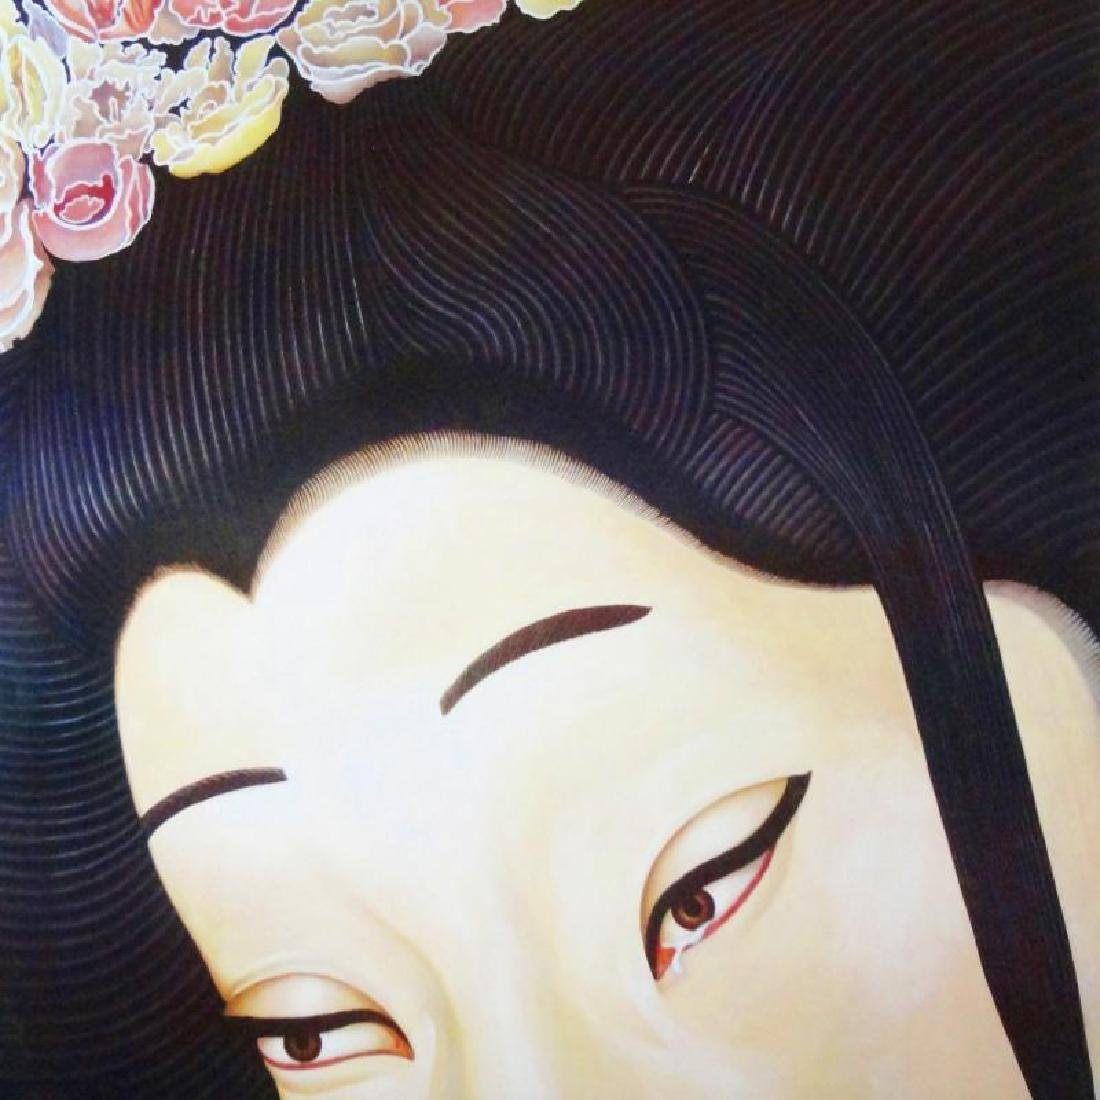 Madama Butterfly Colorful Asian Style Theatre Print - 3